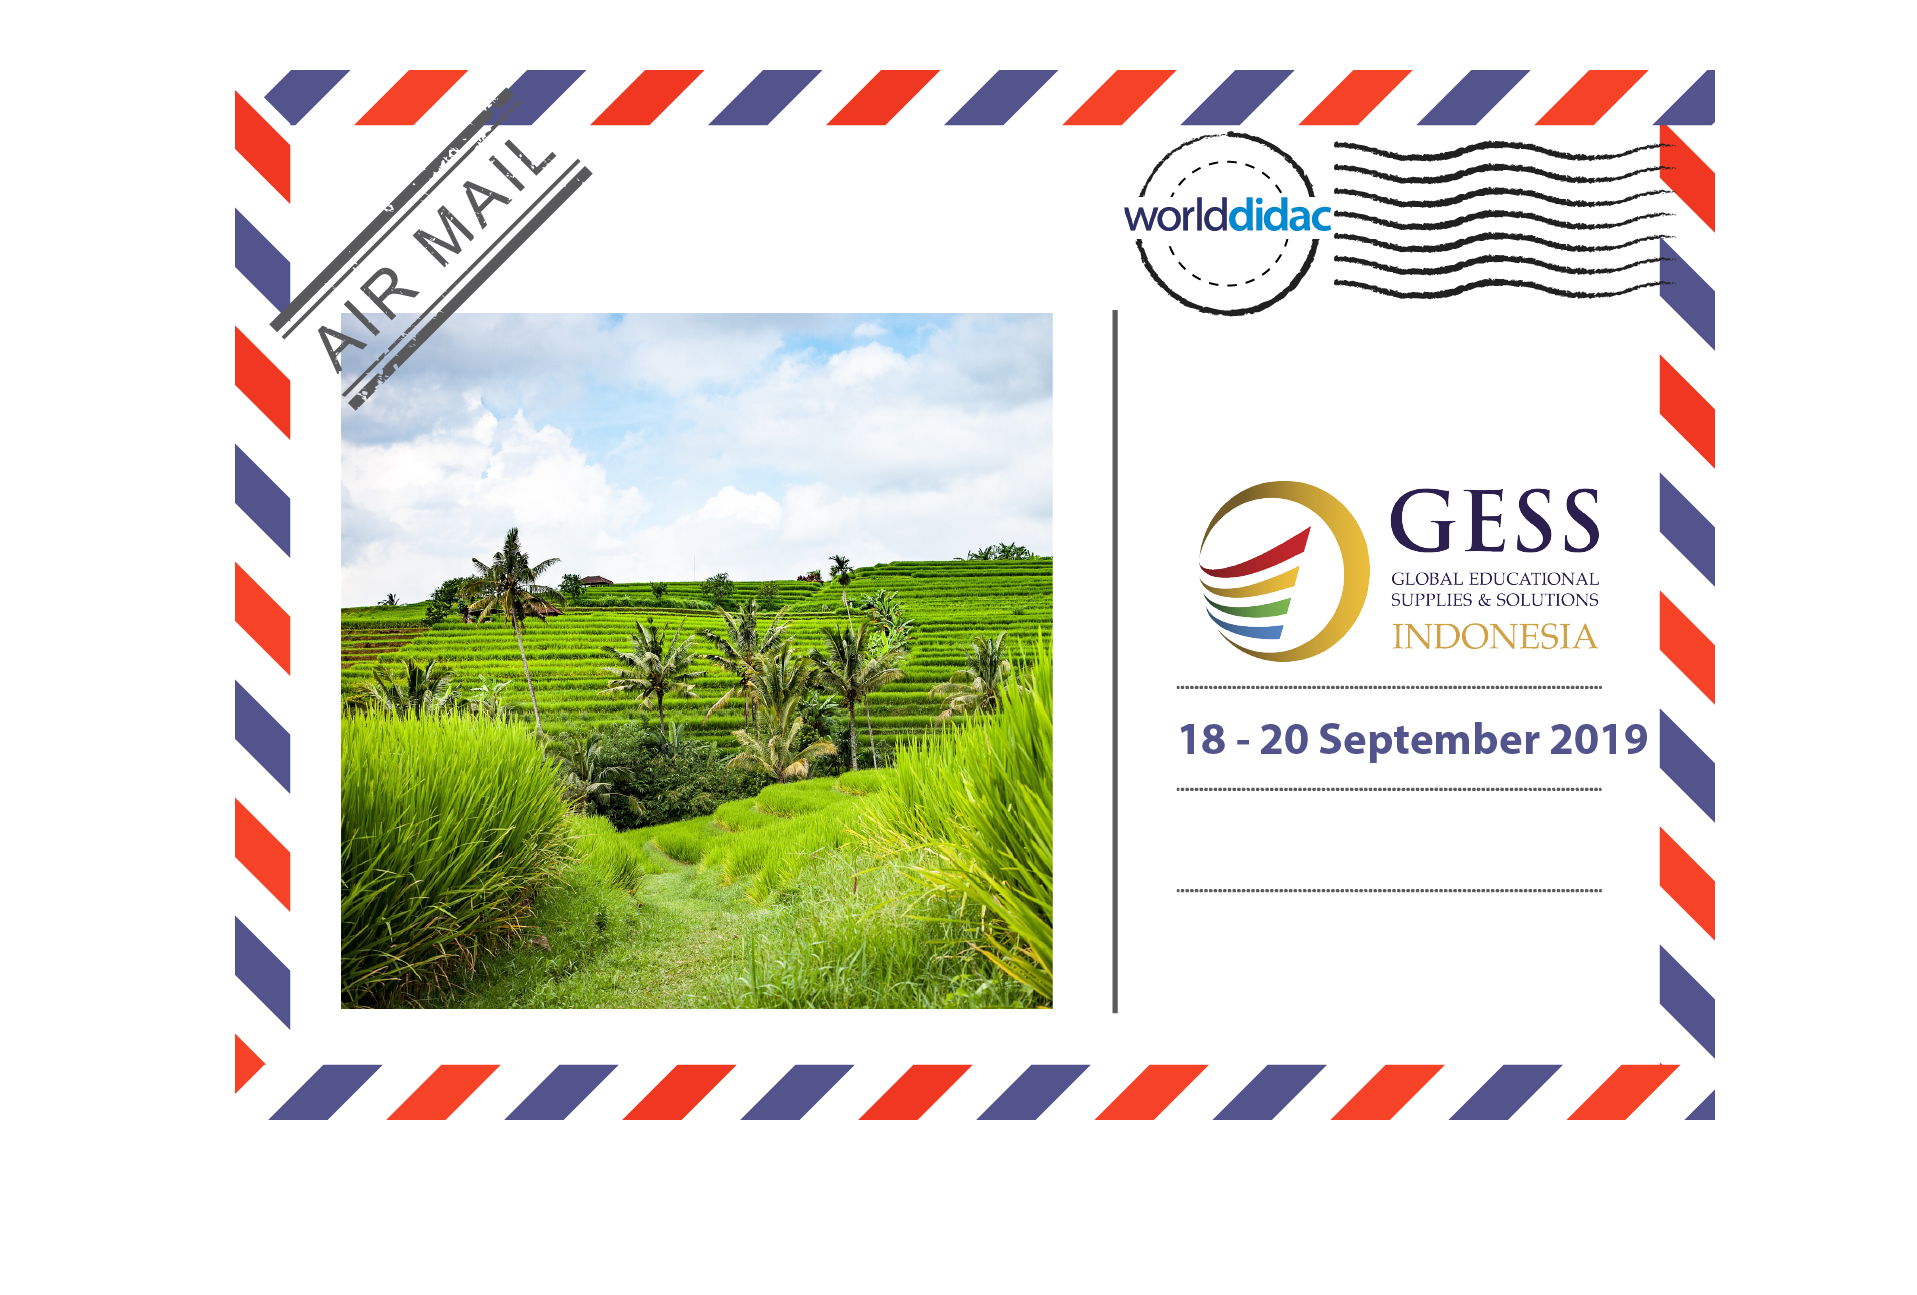 Air Mail GESS Indonesia - Logo and Picture of Rice Fields